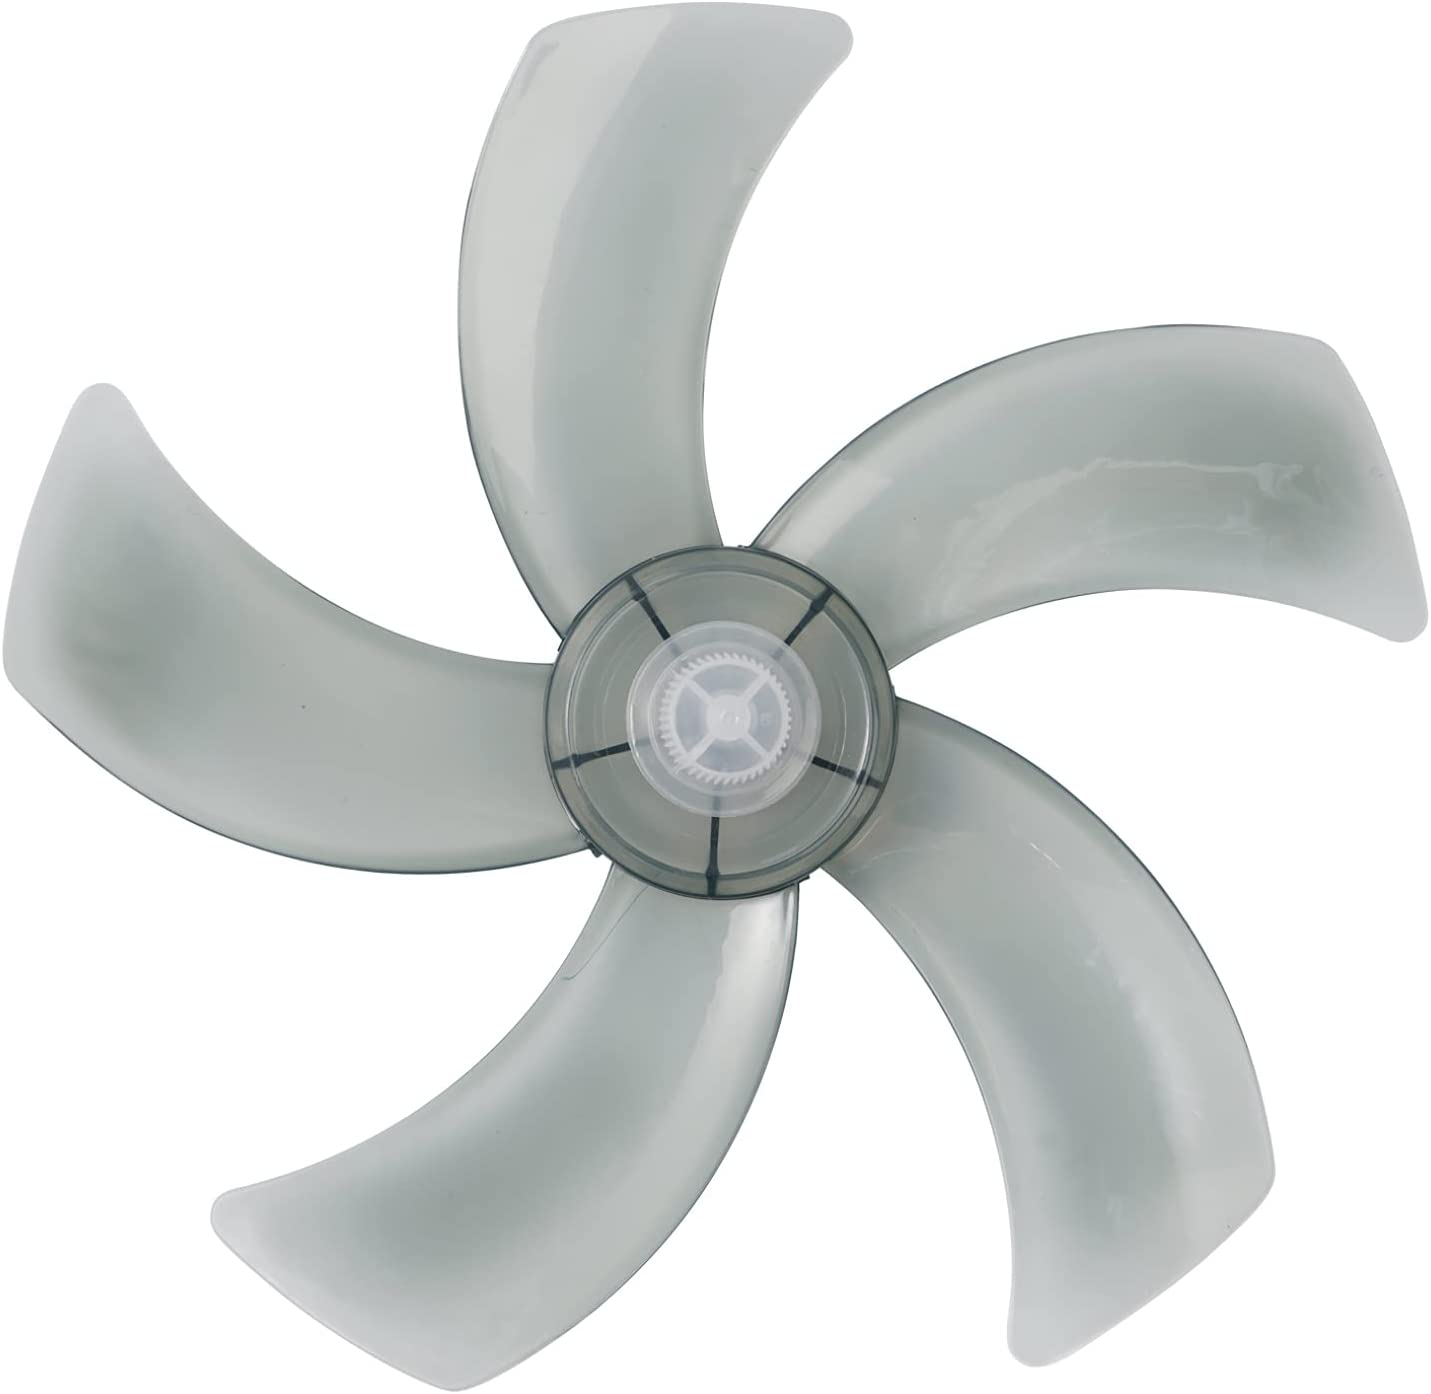 JEATHA 16 Inch Plastic Fan Table Blade 67% Max 61% OFF OFF of fixed price Fanner Silence